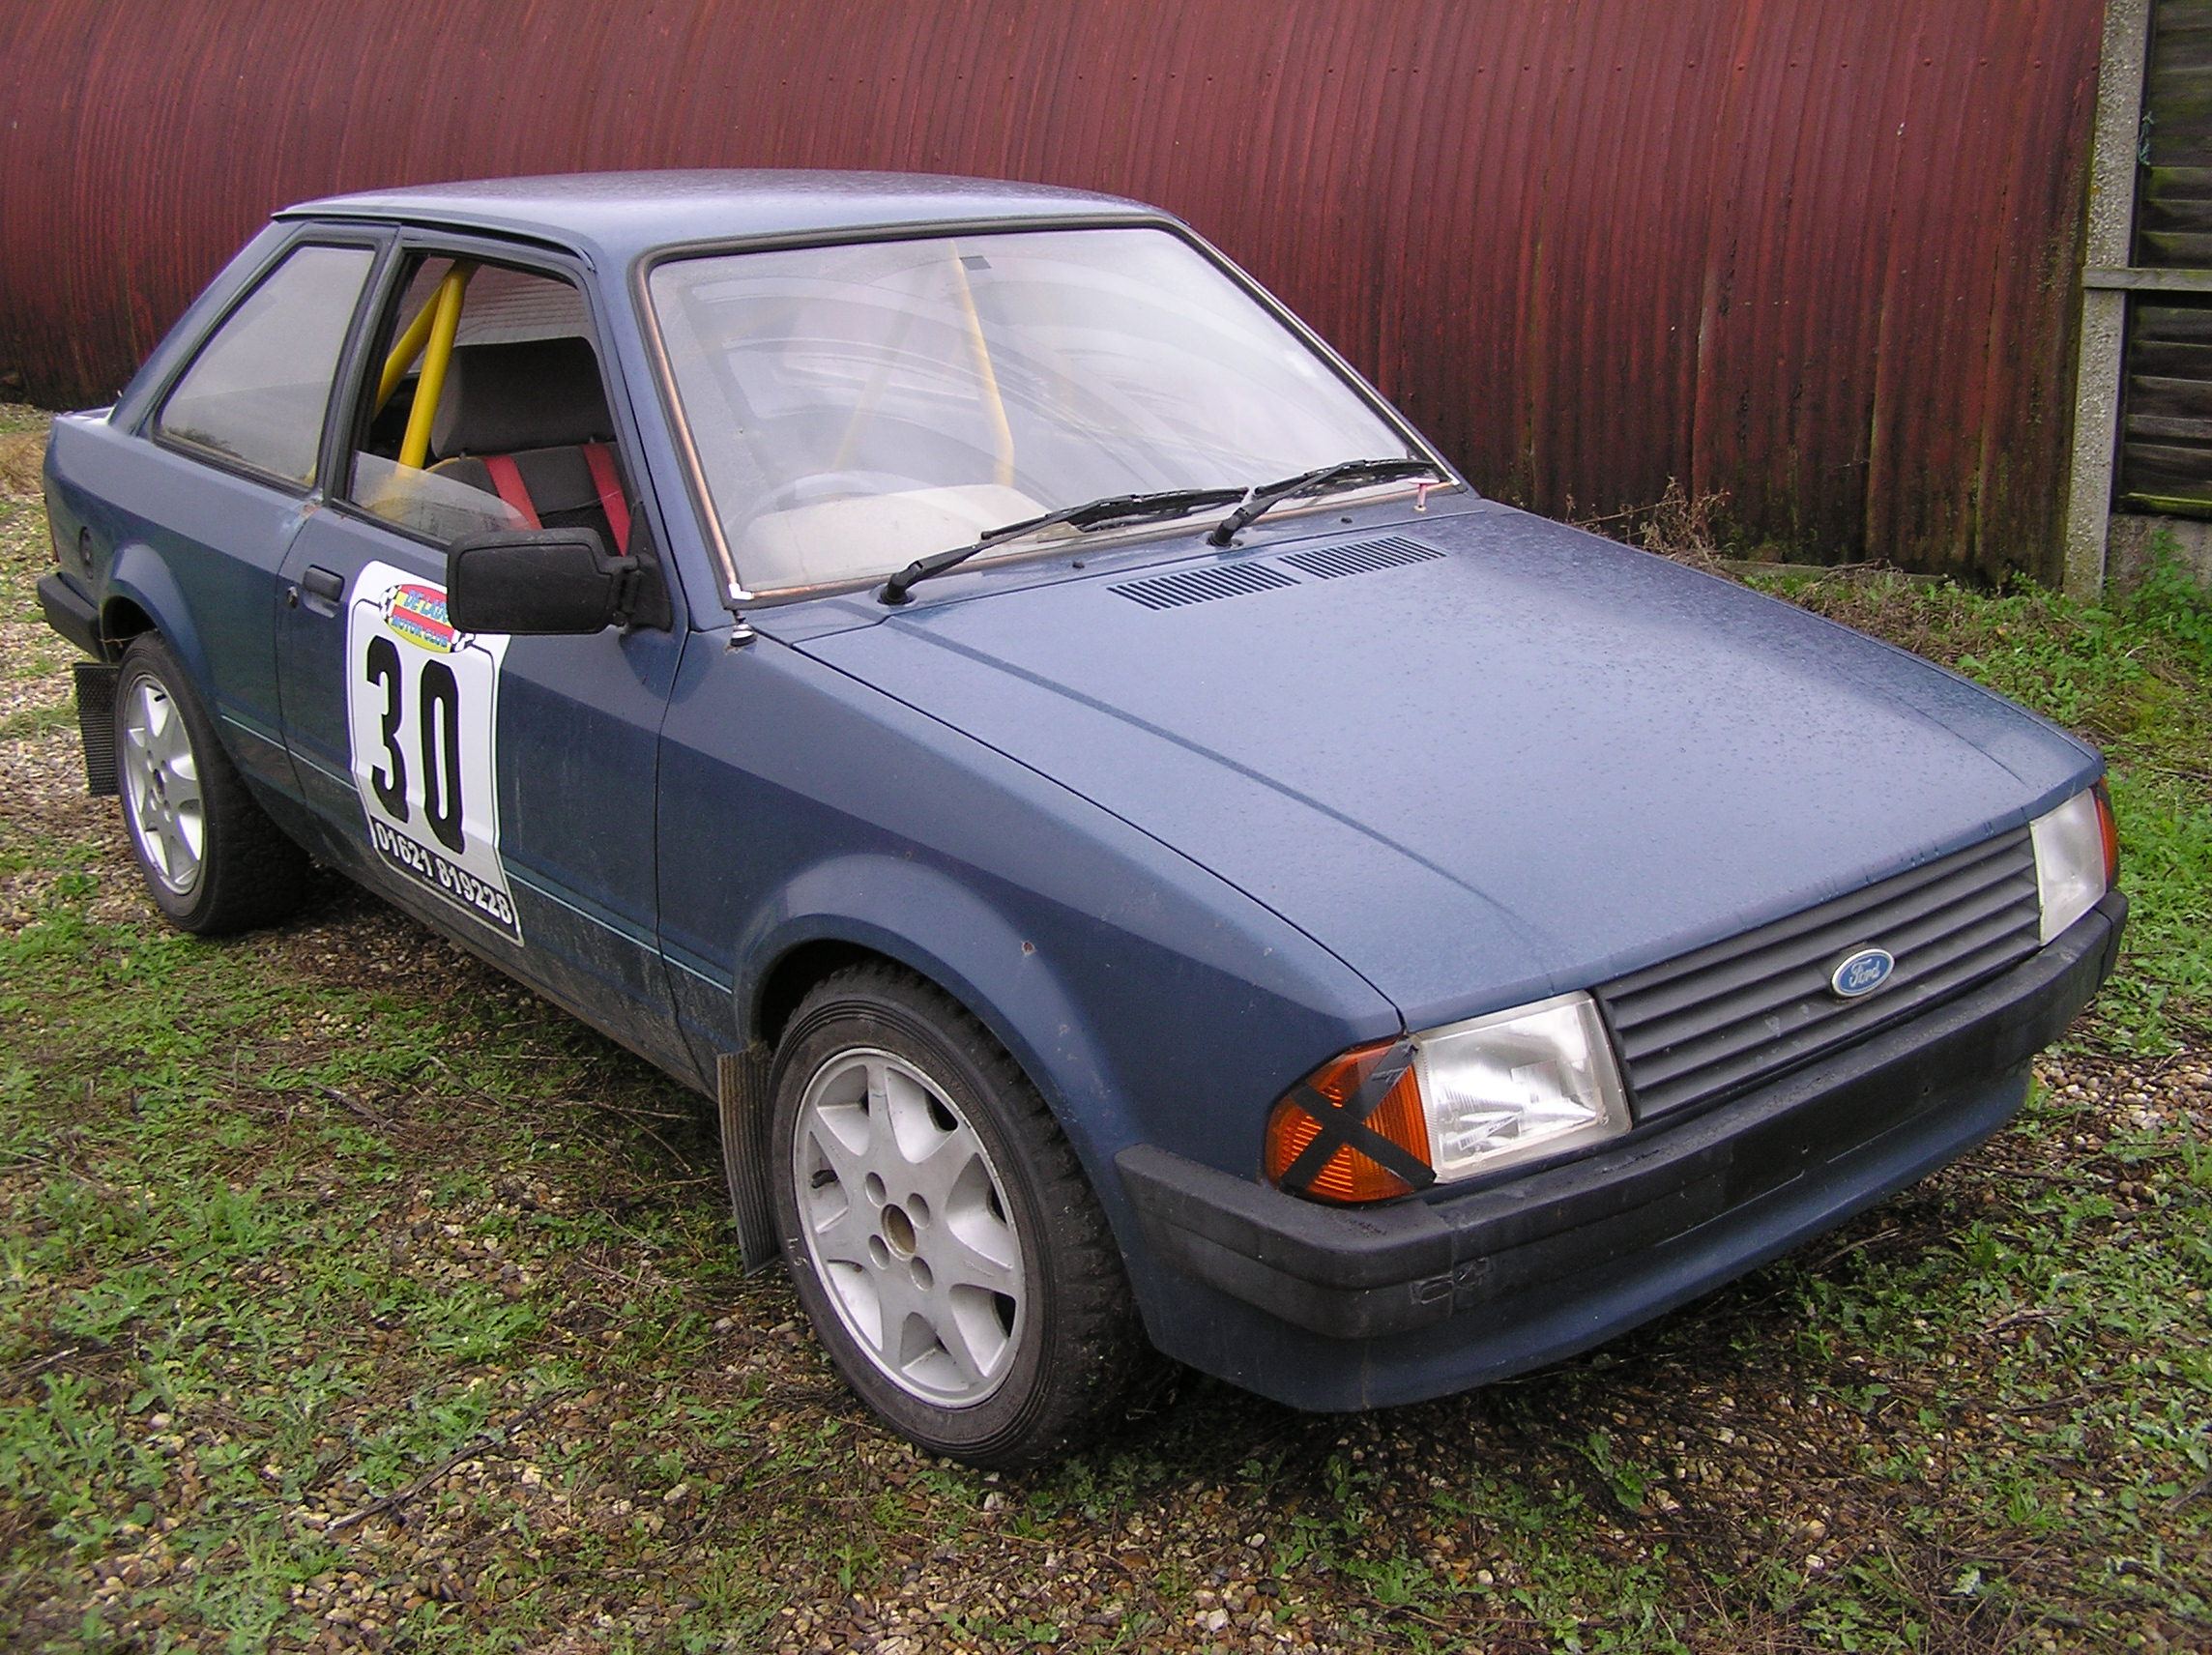 Ford Escort mk3 budget race/rally car or road?